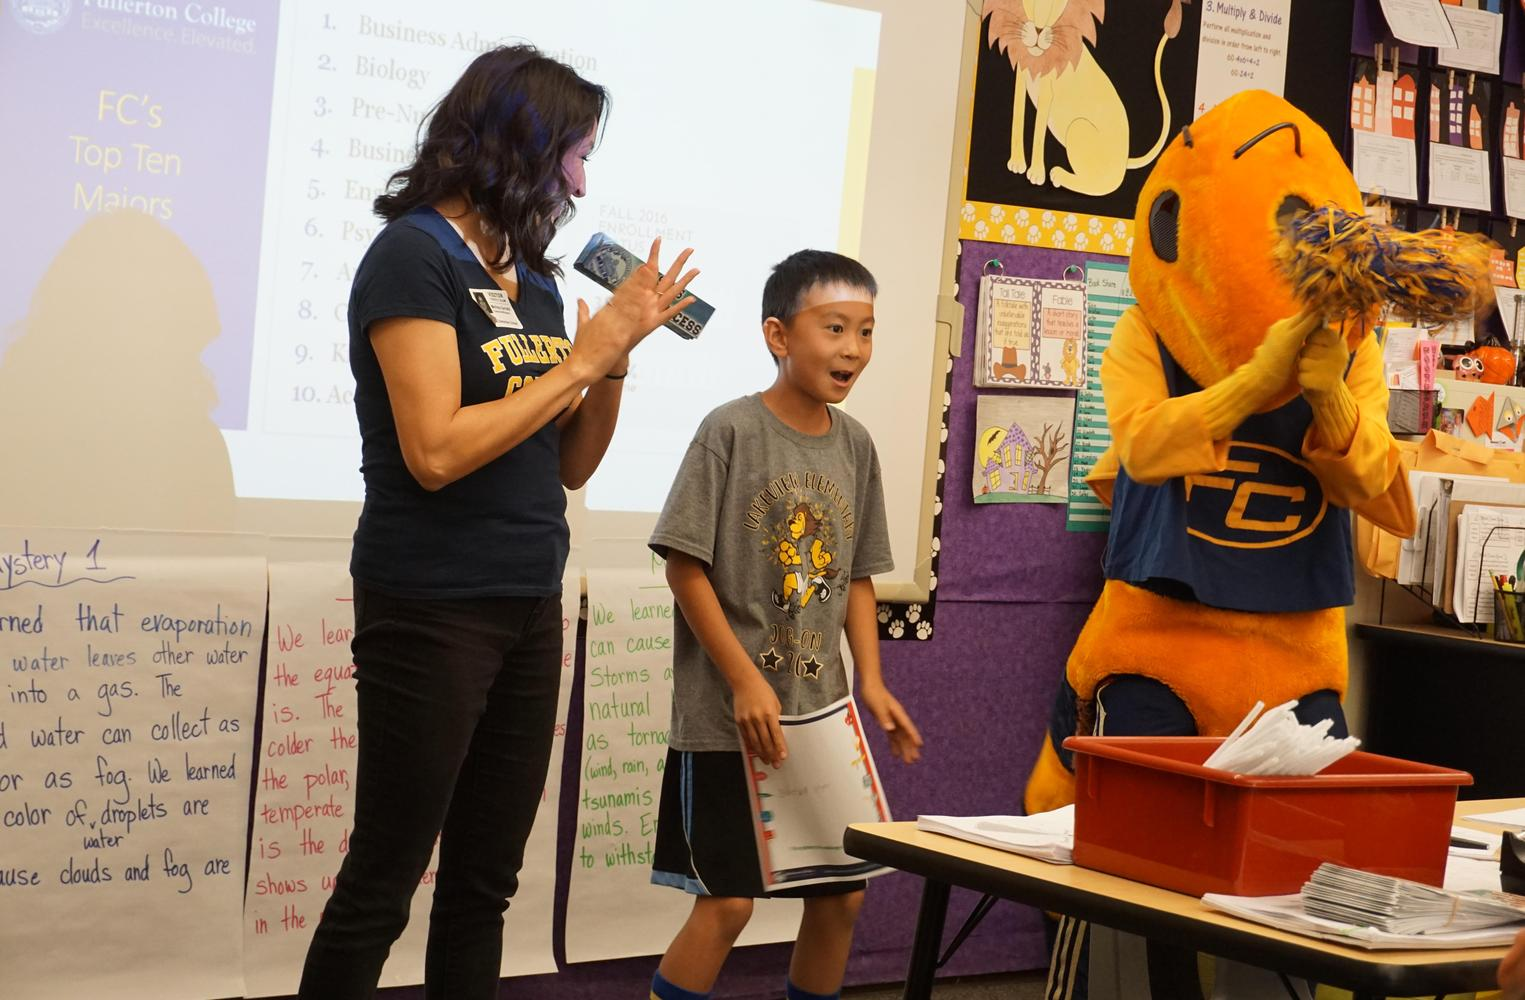 Buzzy the Hornet mascot visiting a classroom